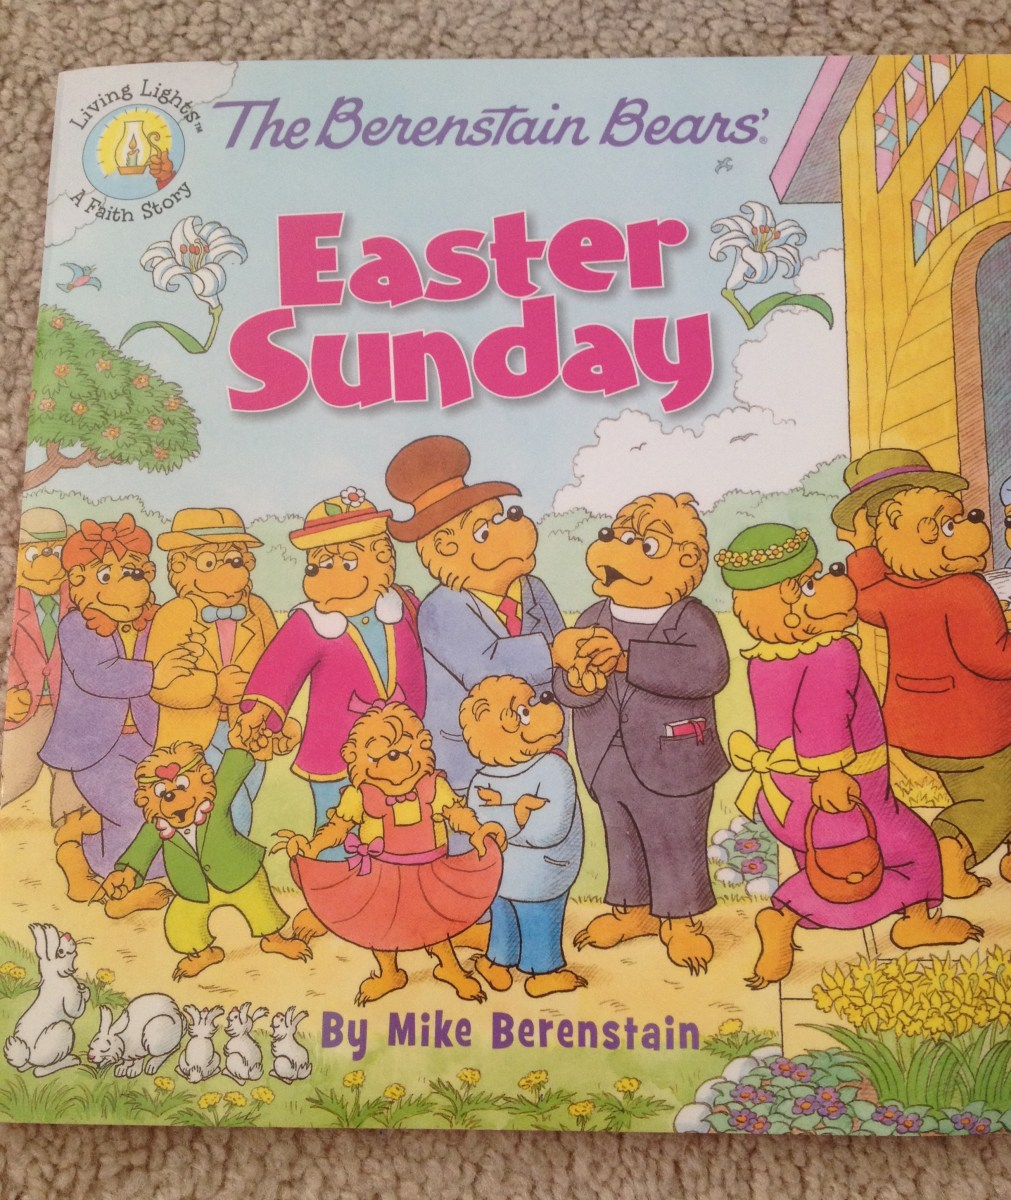 The Berenstain Bears' Easter Sunday - Review